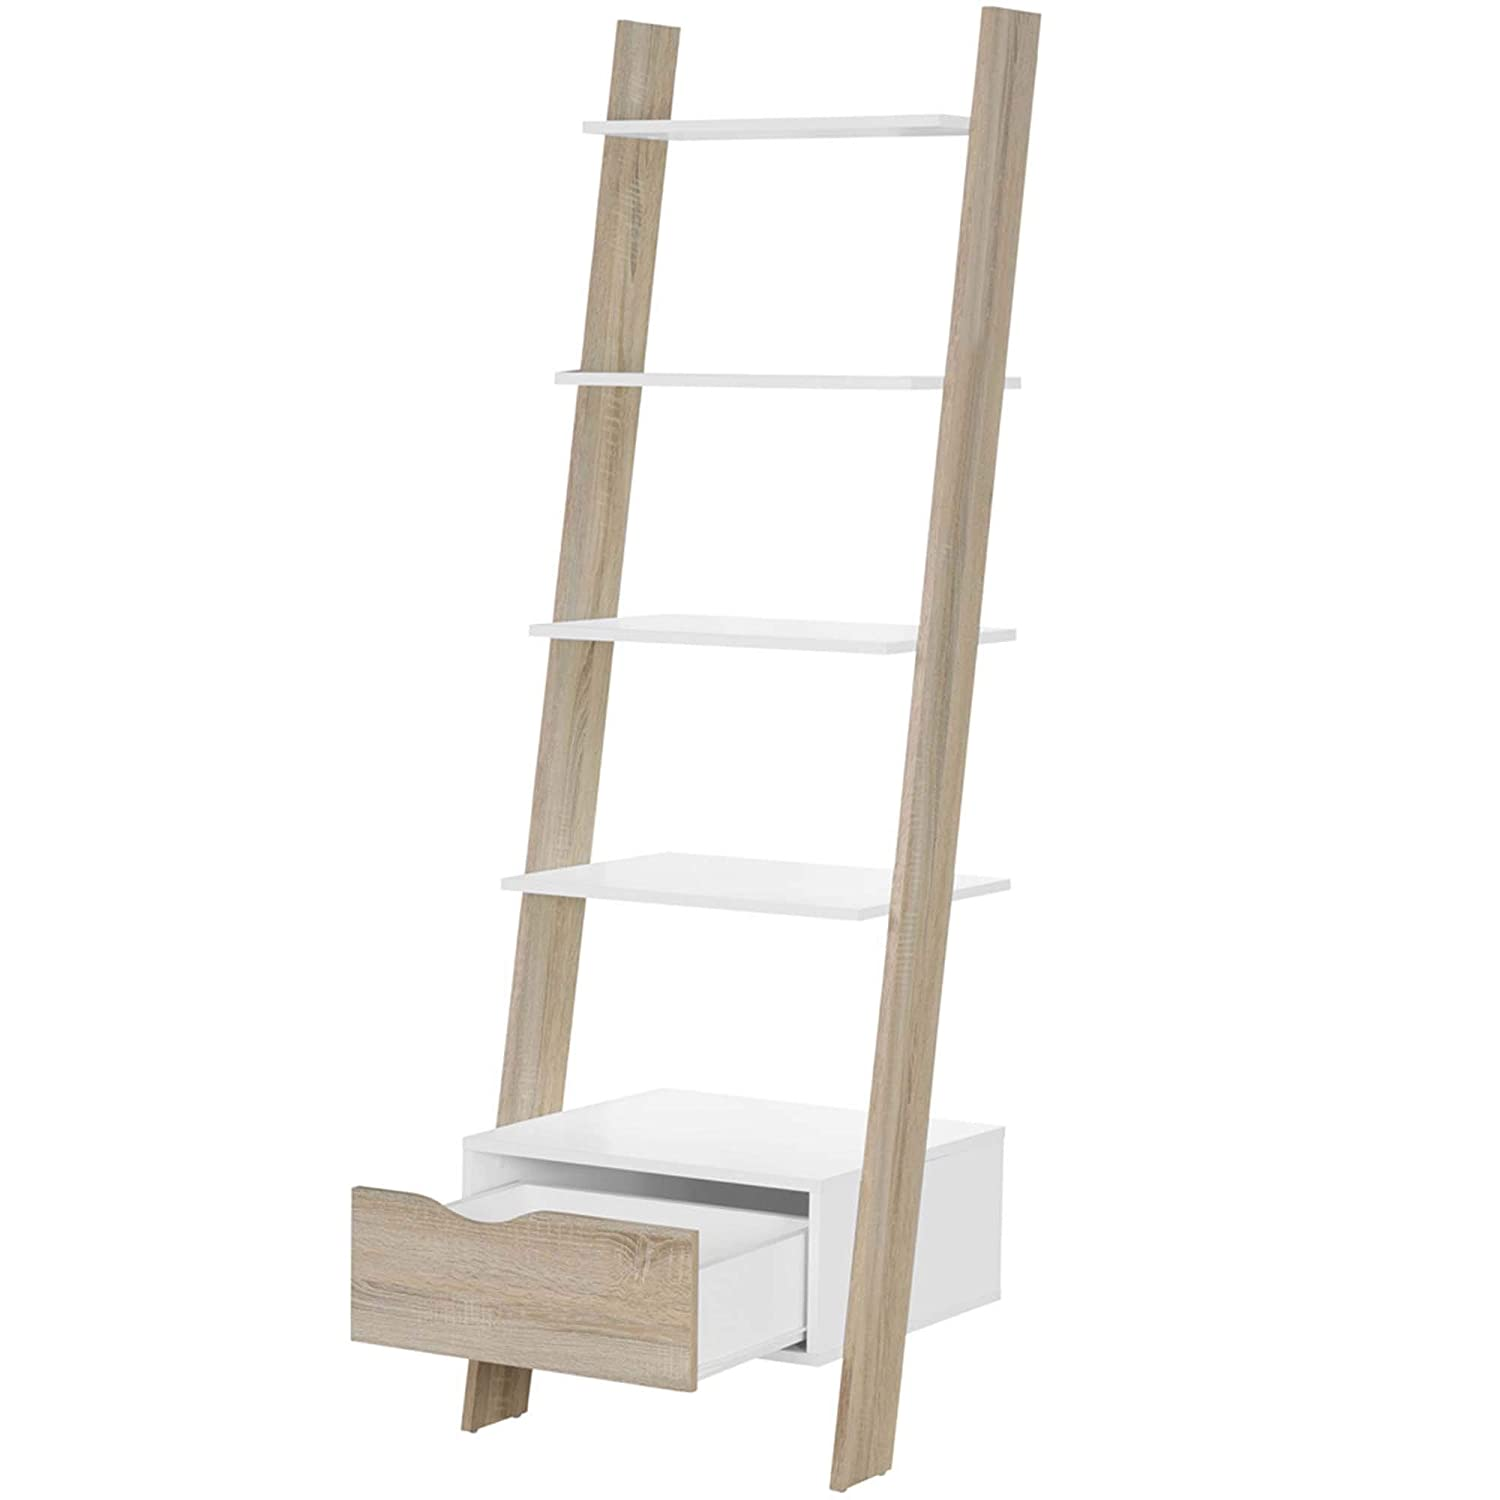 VonHaus Ladder Bookcase Scandinavian Nordic Style - White and Light Oak Effect - Freestanding Open Storage Organiser Bookshelf Unit - Modern, Contemporary Lounge, Dining or Living Room Furniture Domu Brands